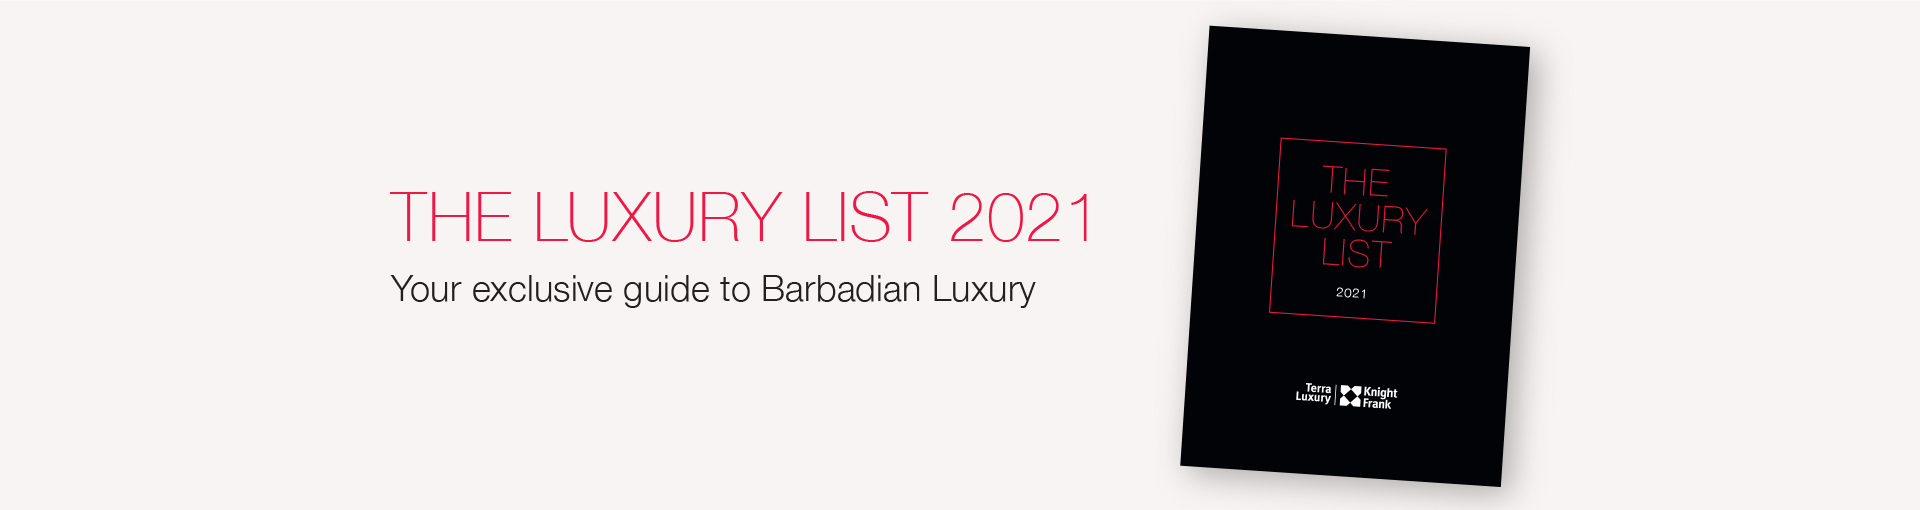 The Luxury List